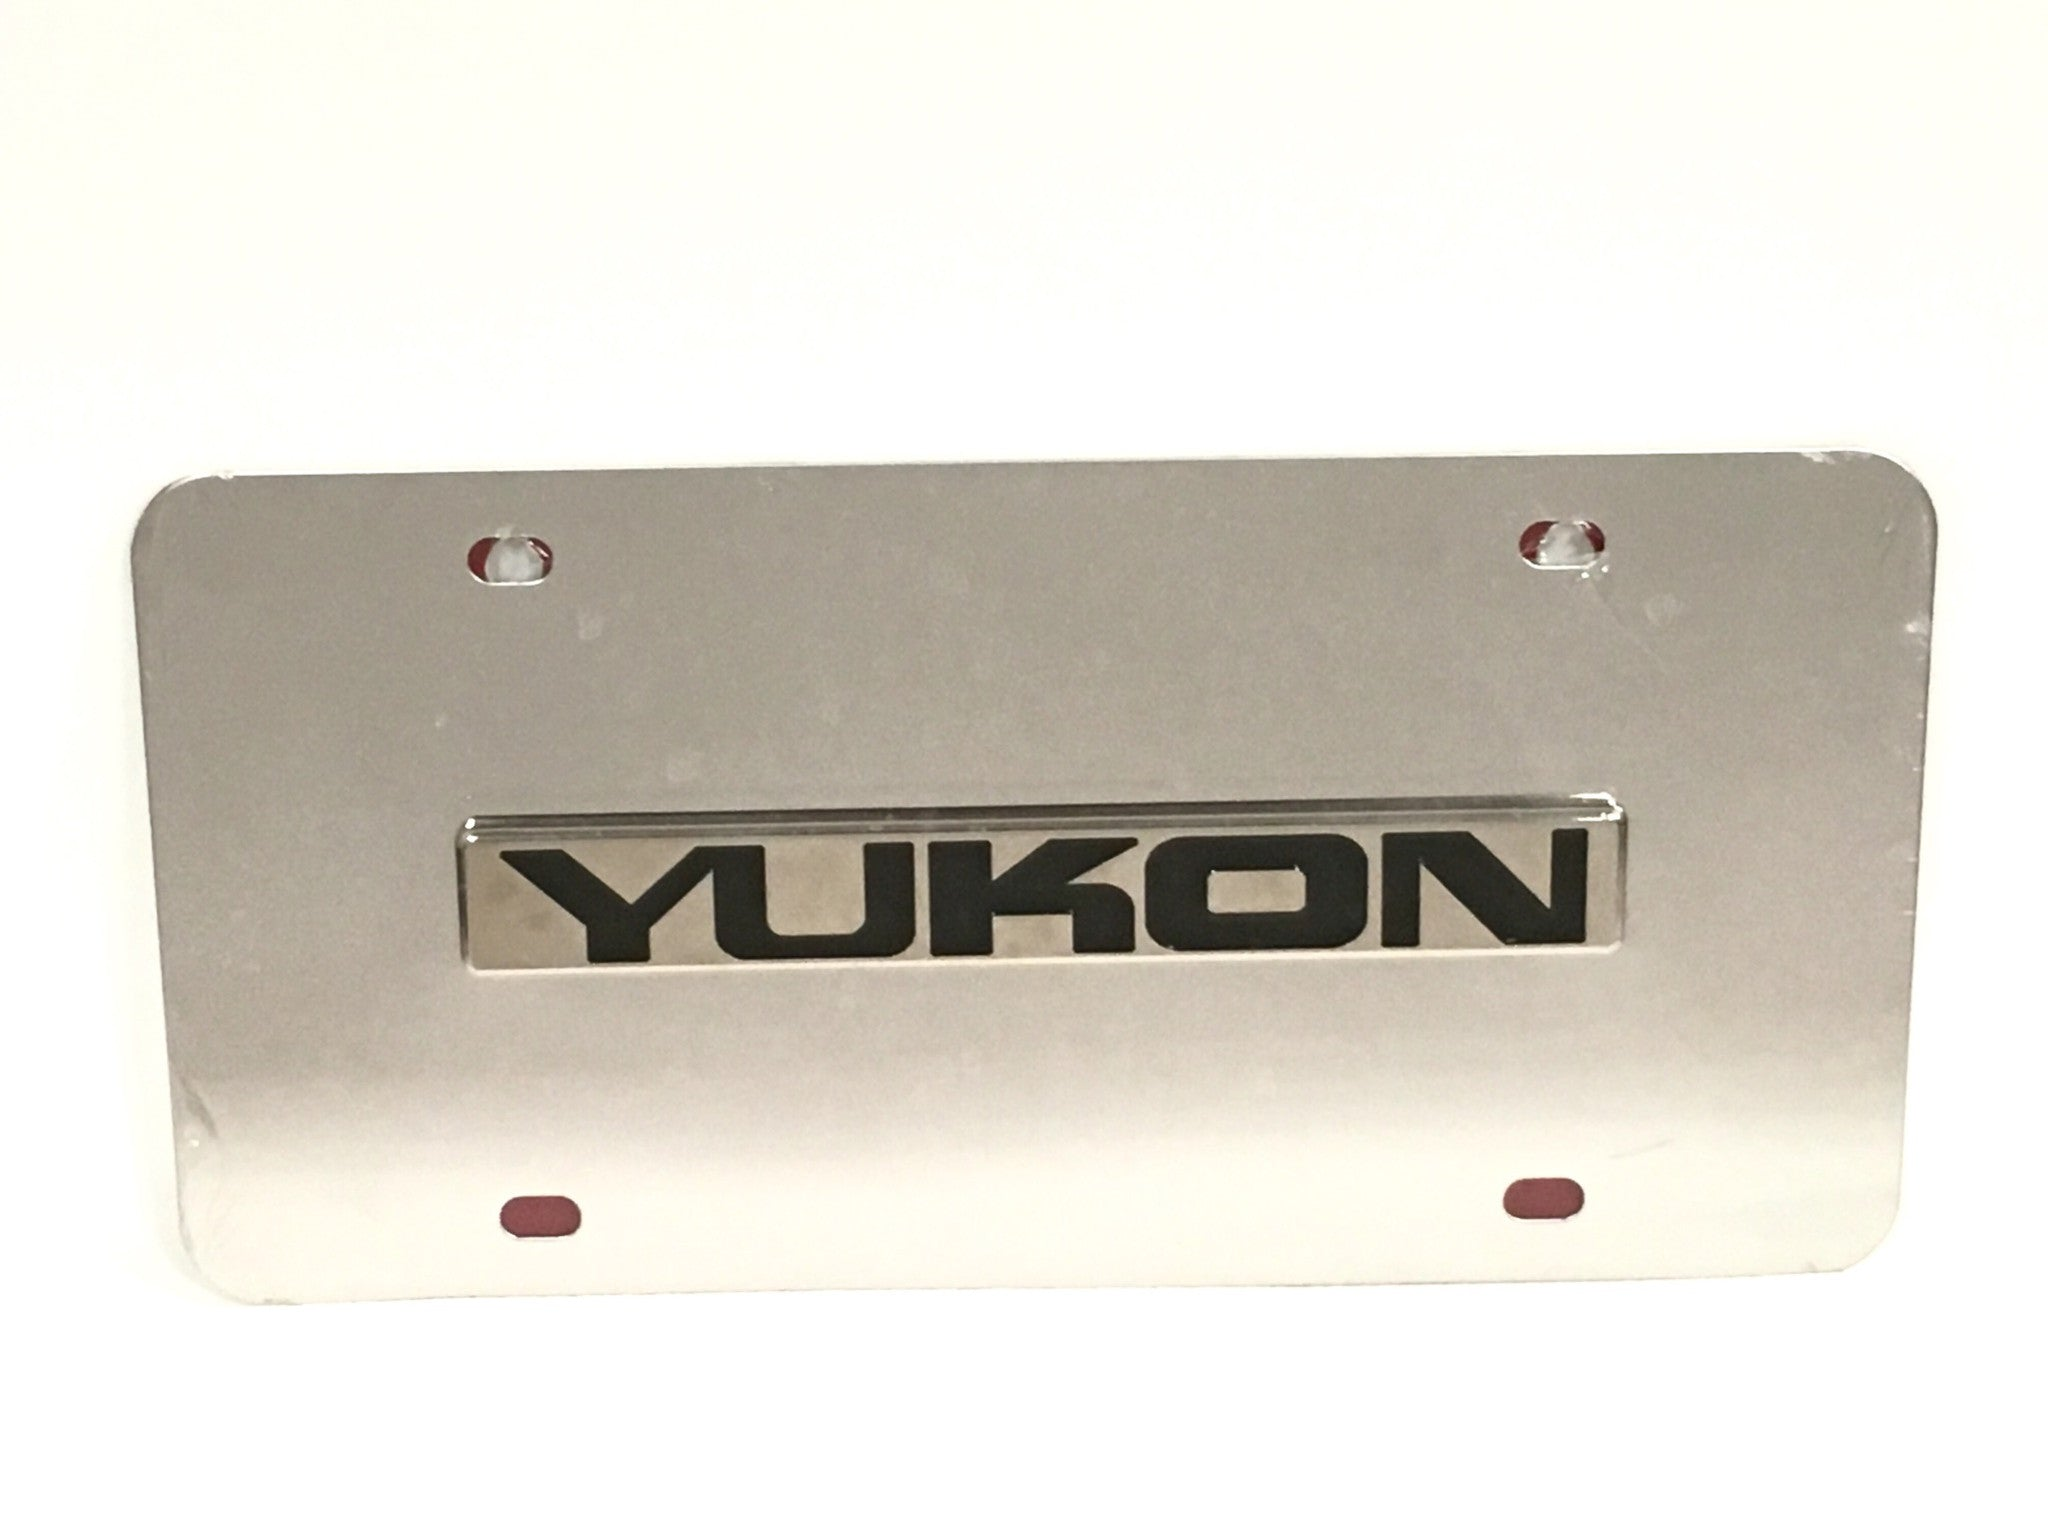 GMC Yukon Stainless Steel License Plate